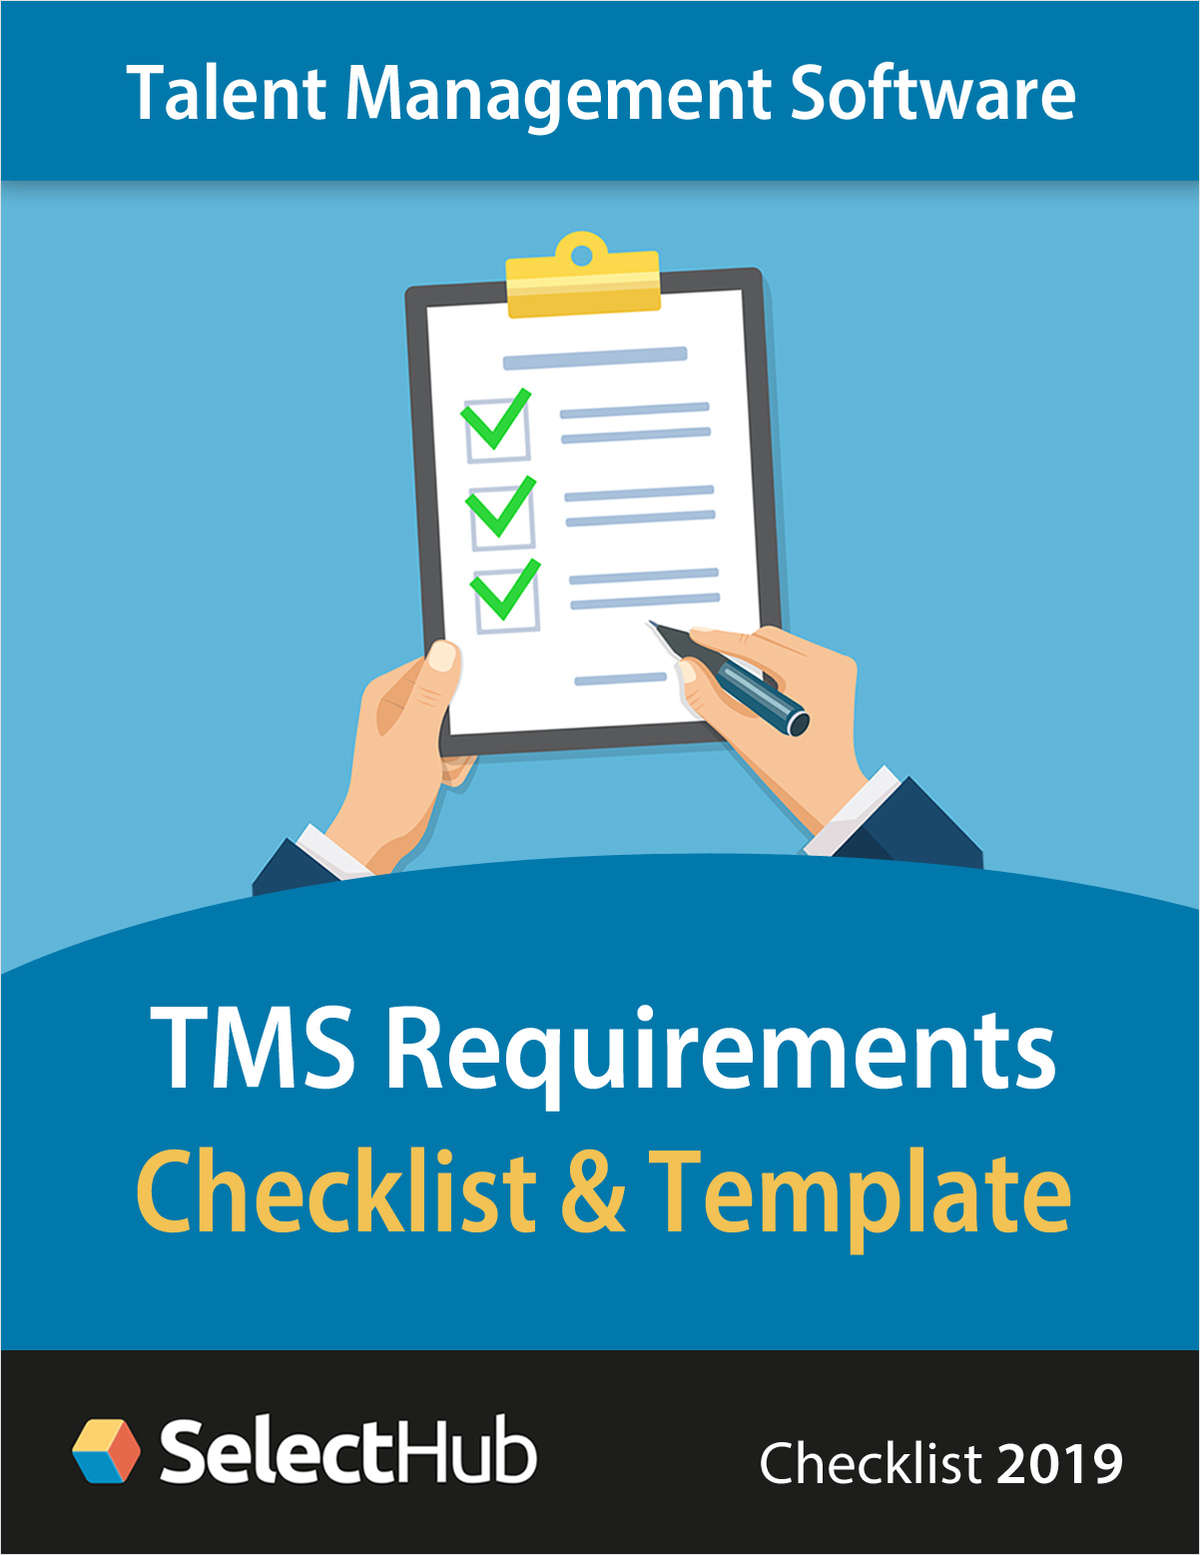 Talent Management Software Checklist and Template